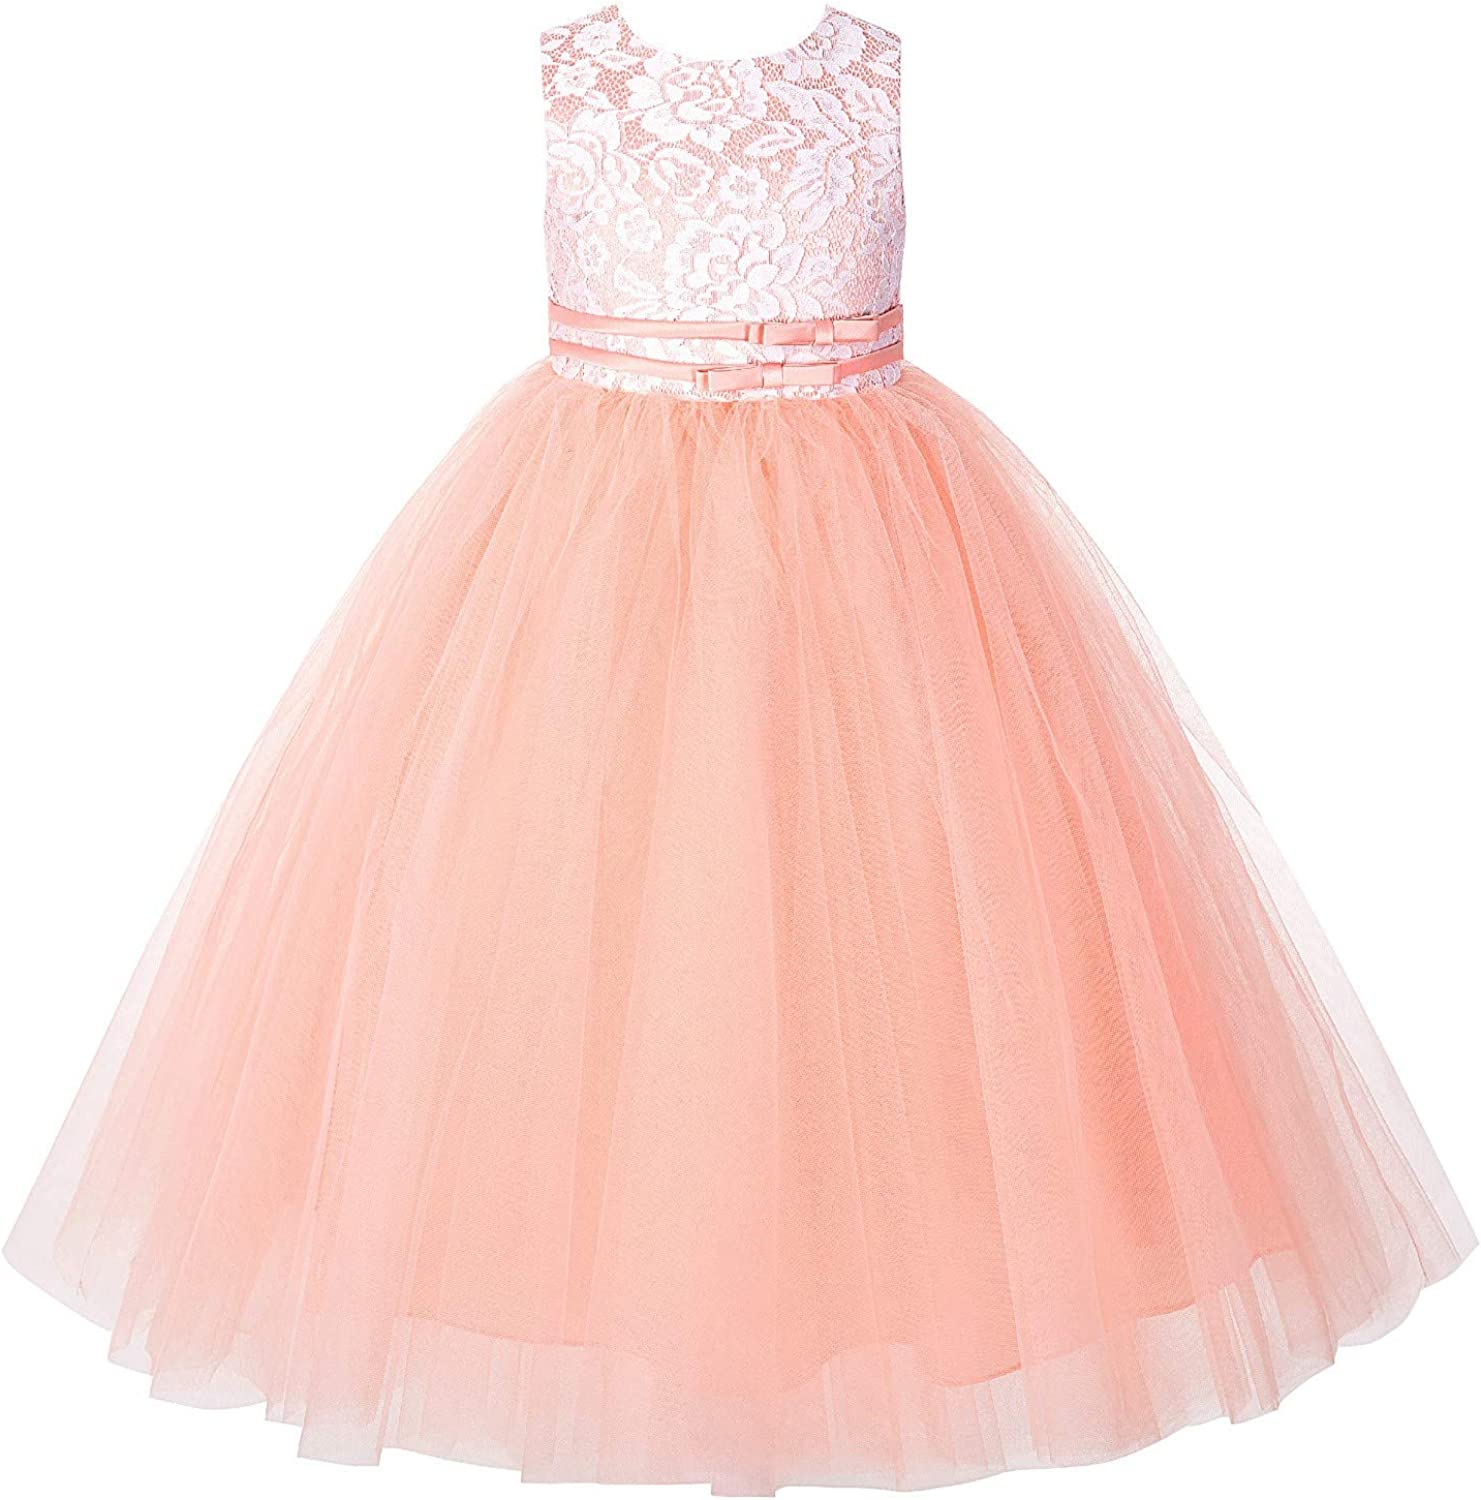 ekidsbridal Lace Tulle Tutu Baby Flower Girl Dress Formal Pageant Gown Special Occasions